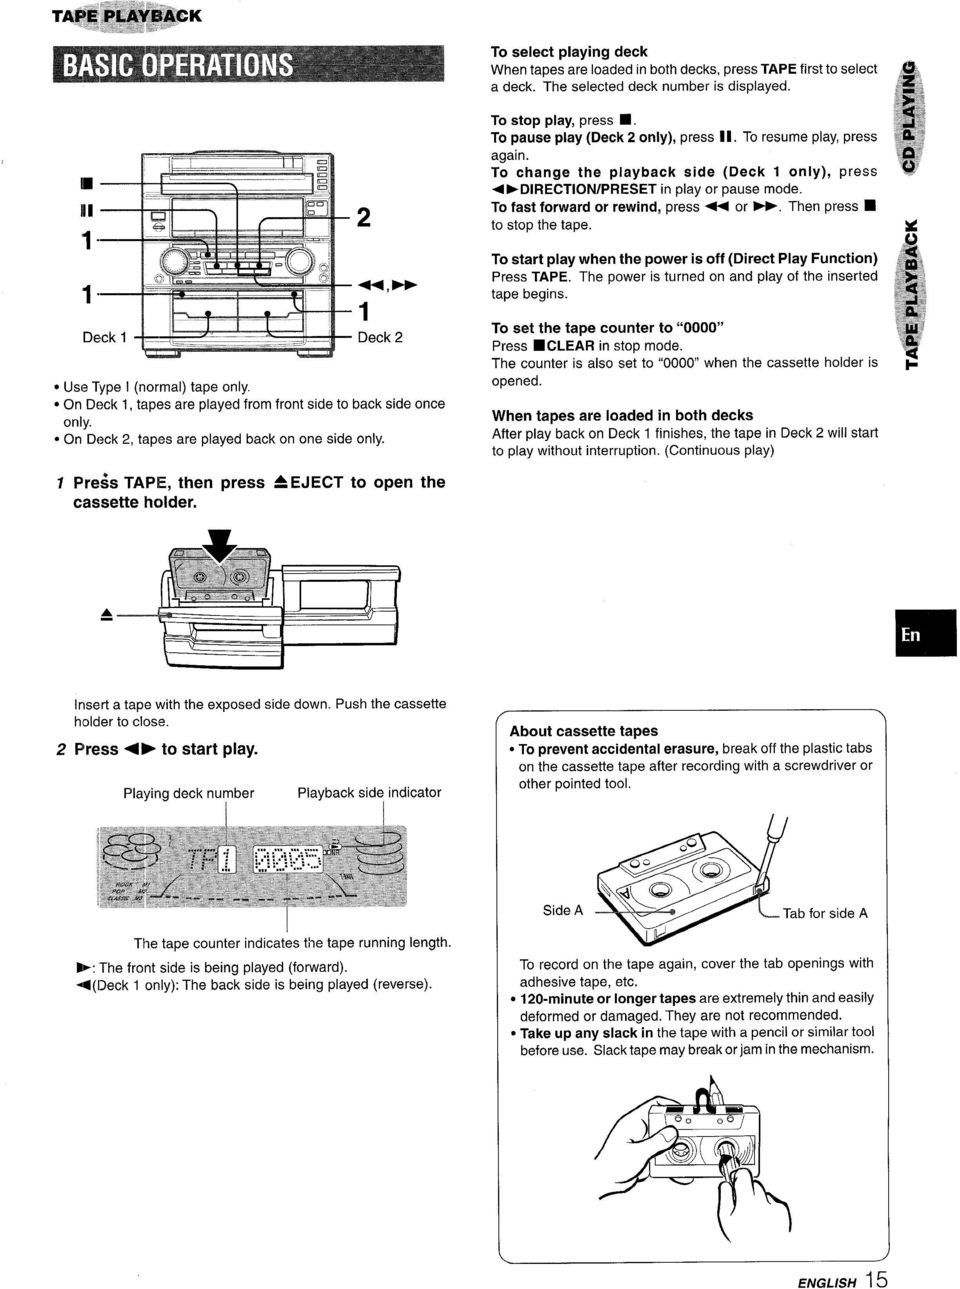 For Assistance And Information Call Toll Free I 800 Buy Aiwa Schematic Diagrams Circuits 600 Watt Hifi Power Amplifiers Pa600 To Change The Playback Side Deck Only Press 4 Dlrect0n Preset